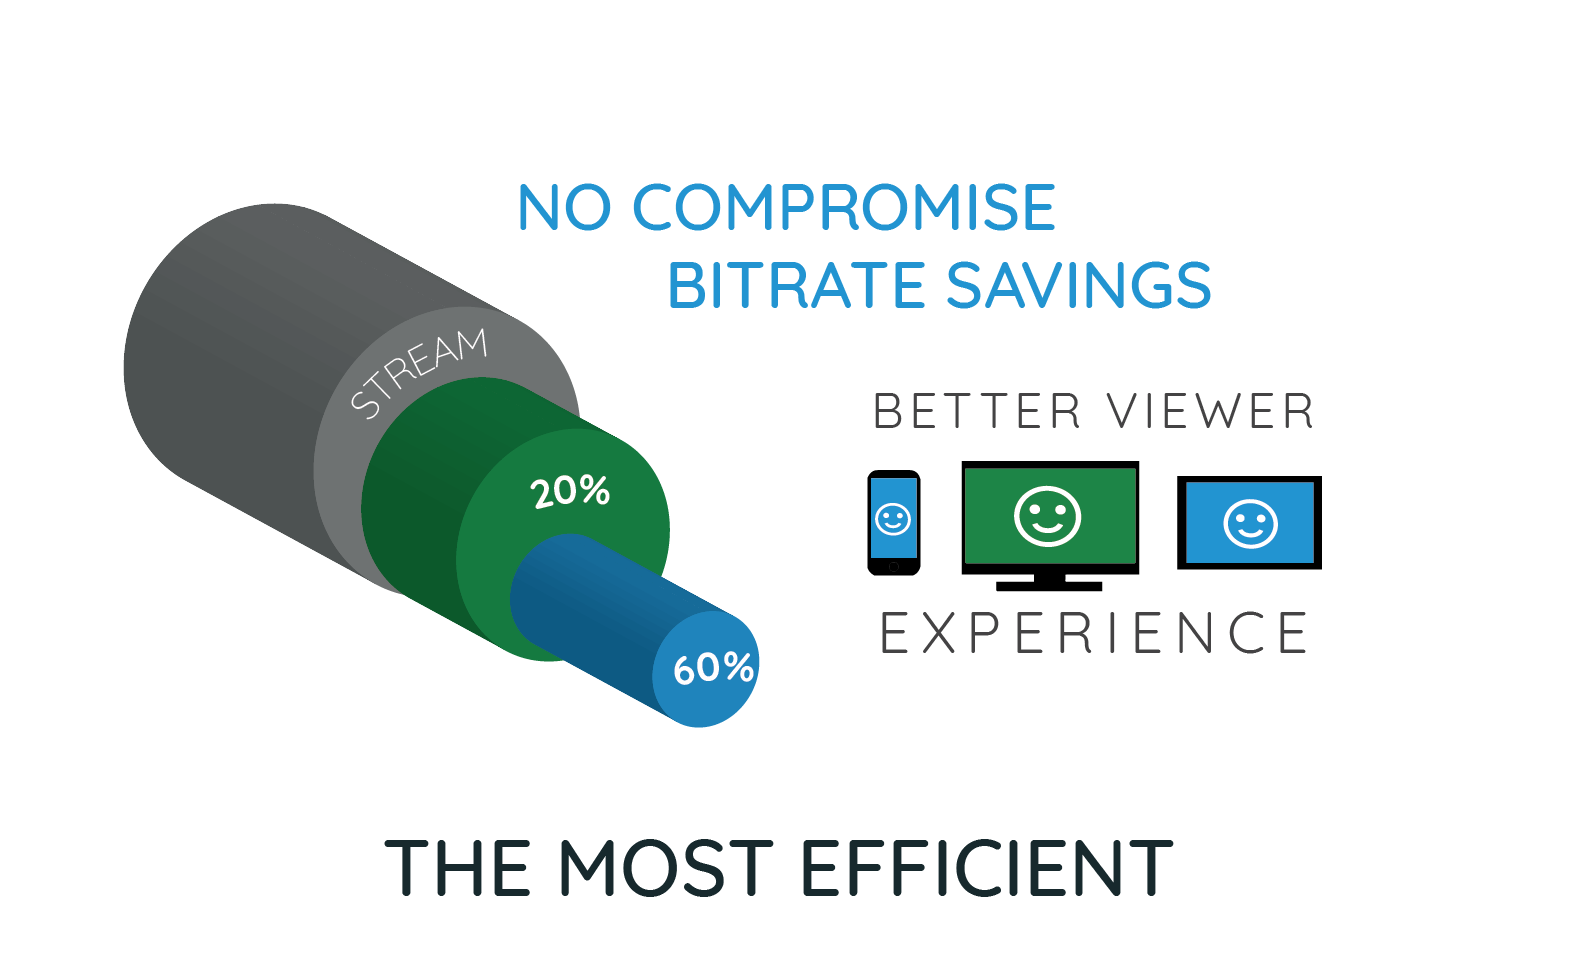 The Most Efficient Infographic - No compromise bitrate savings